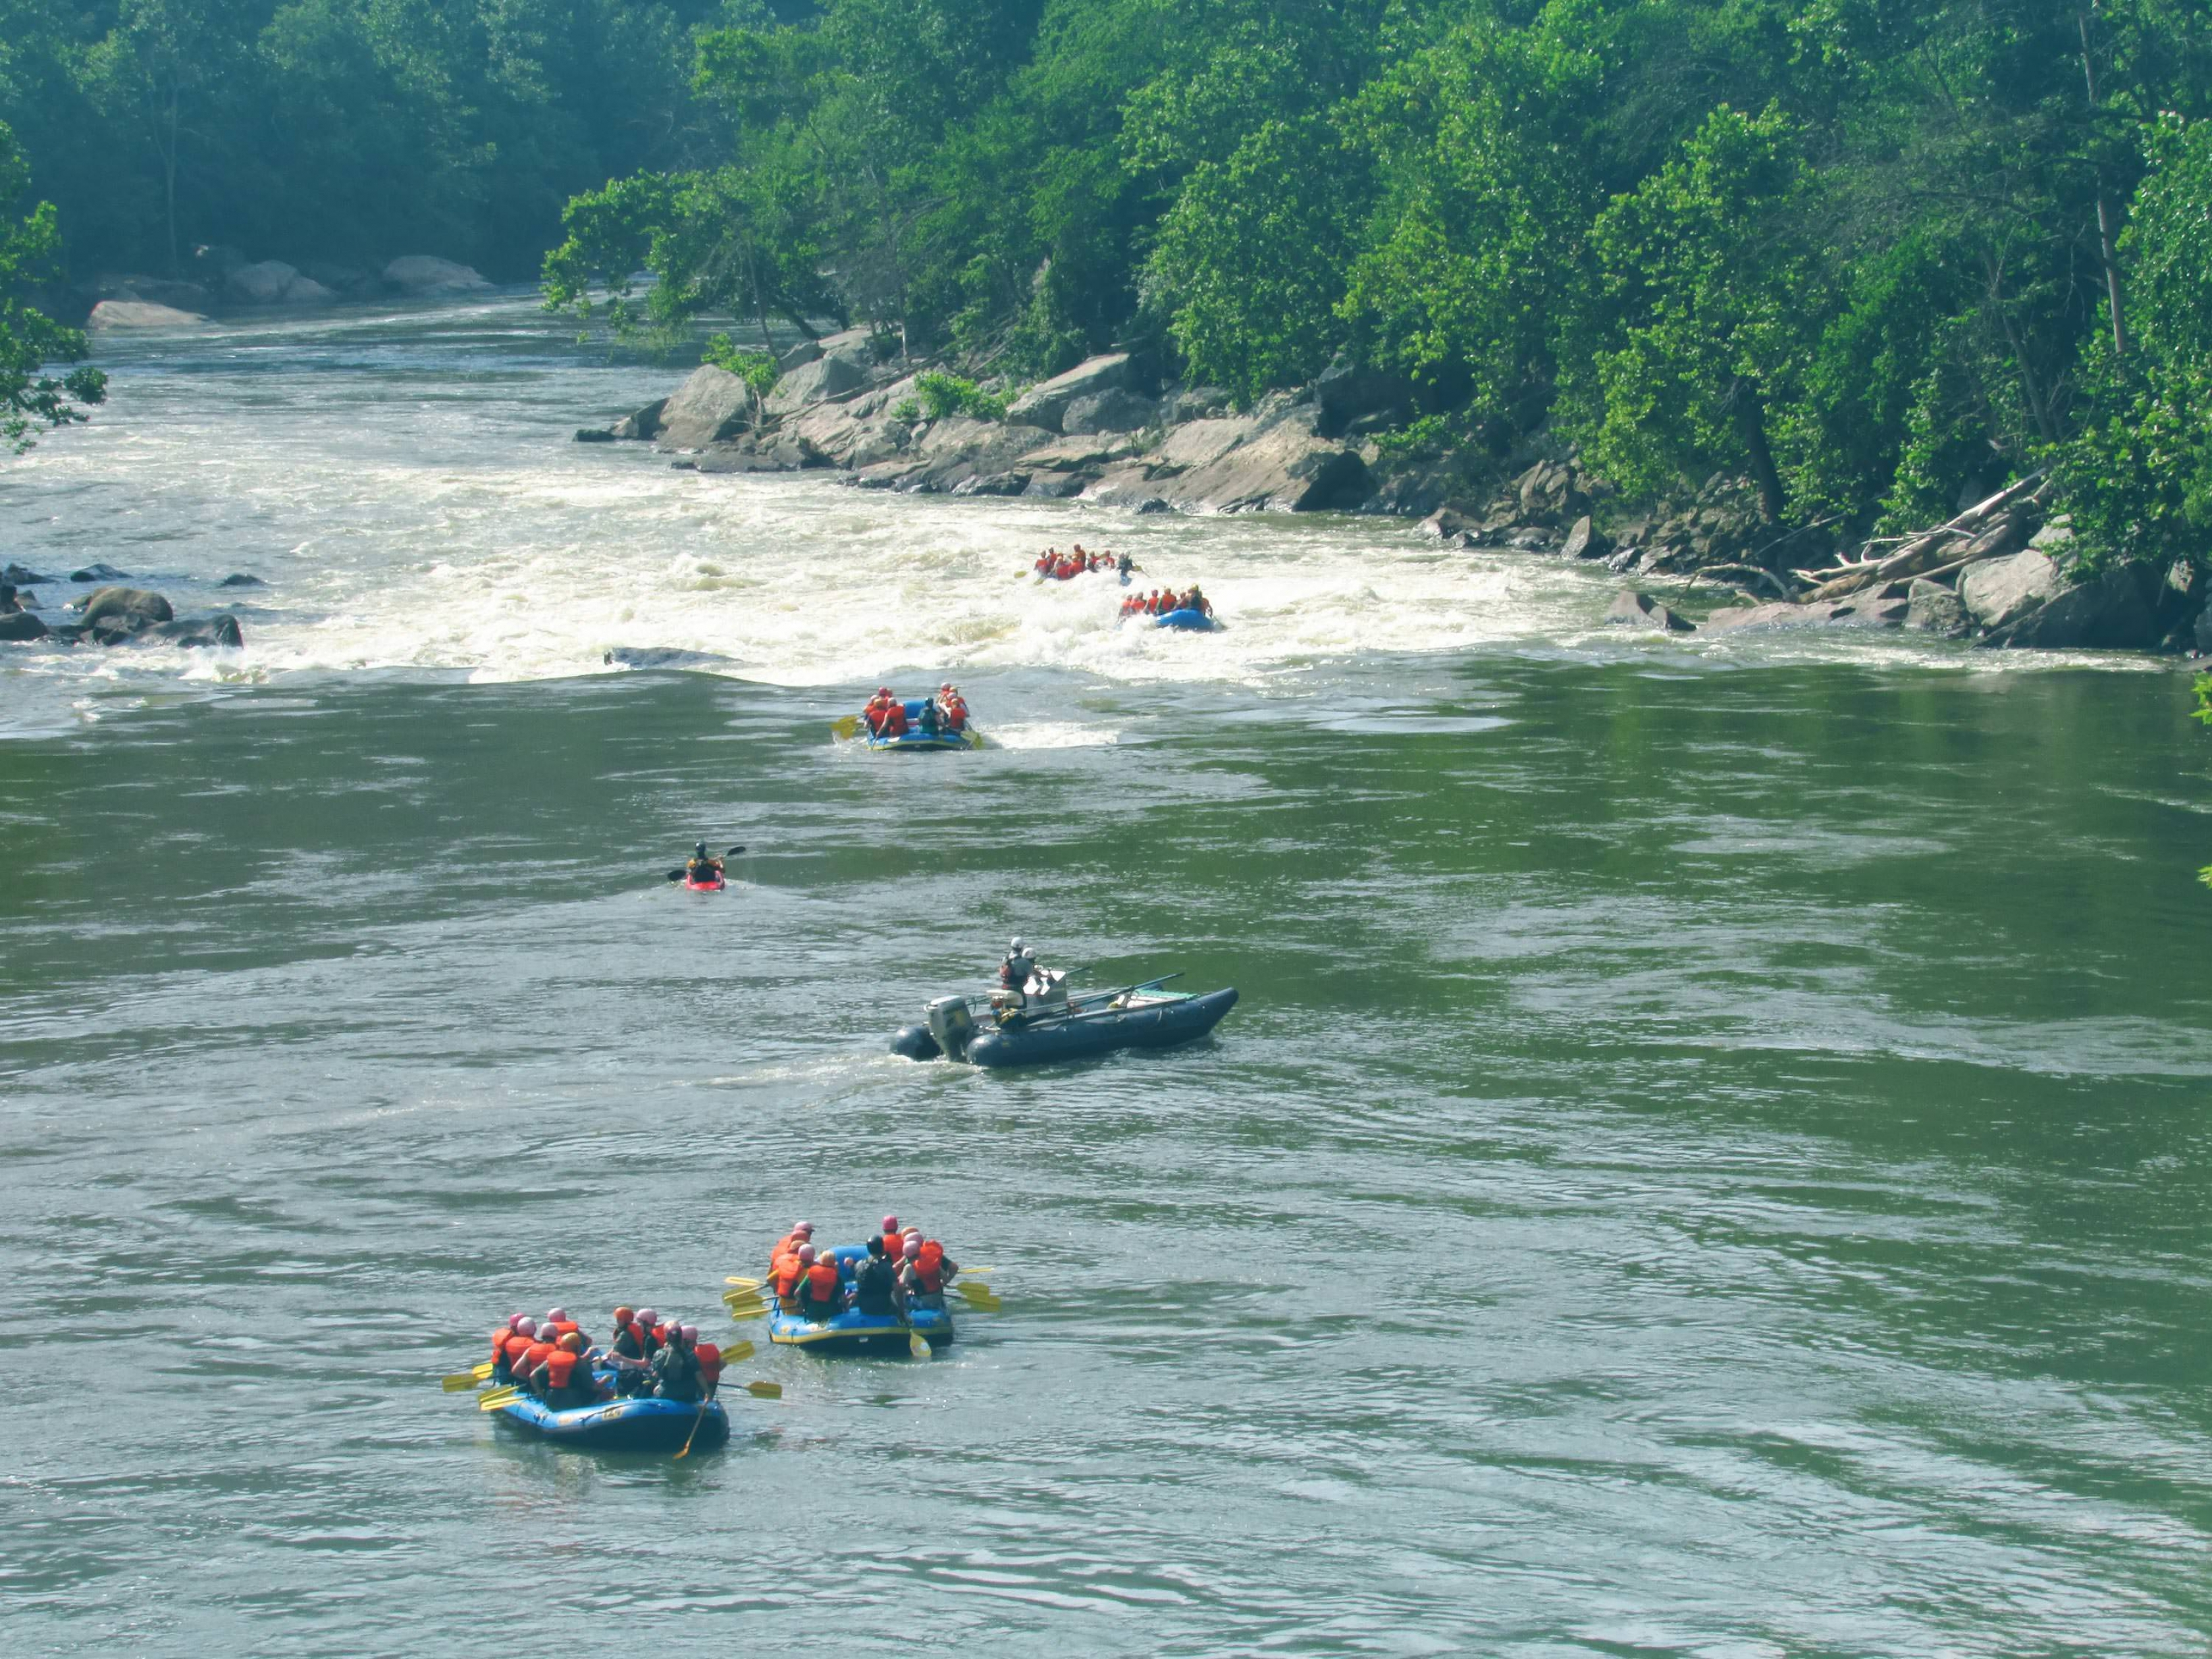 A group of rafters braves the New River Gorge.